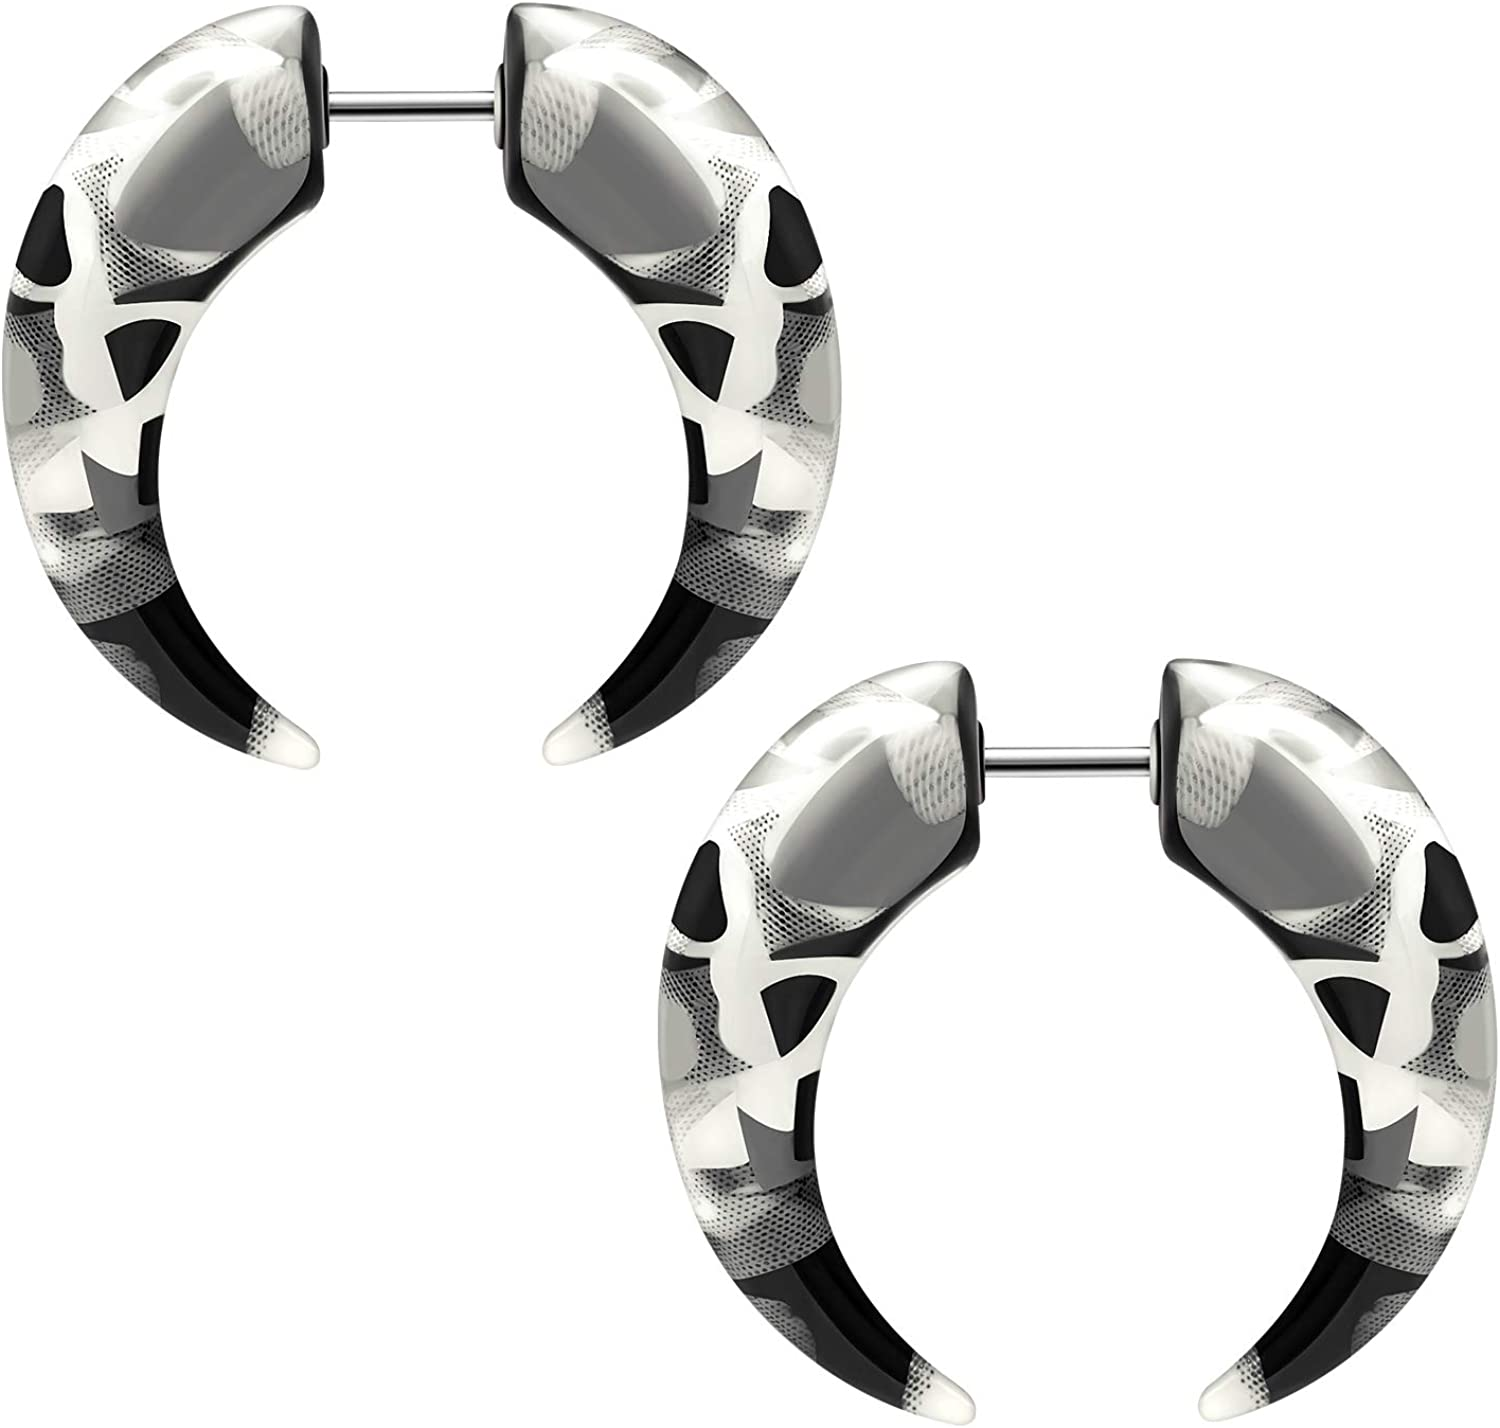 BIG GAUGES Pair of Acrylic Marble Spiral Claw Fake Steel Plugs Piercing Jewelry Fake Ear Plugs Illusion Cheater Earring Lobe